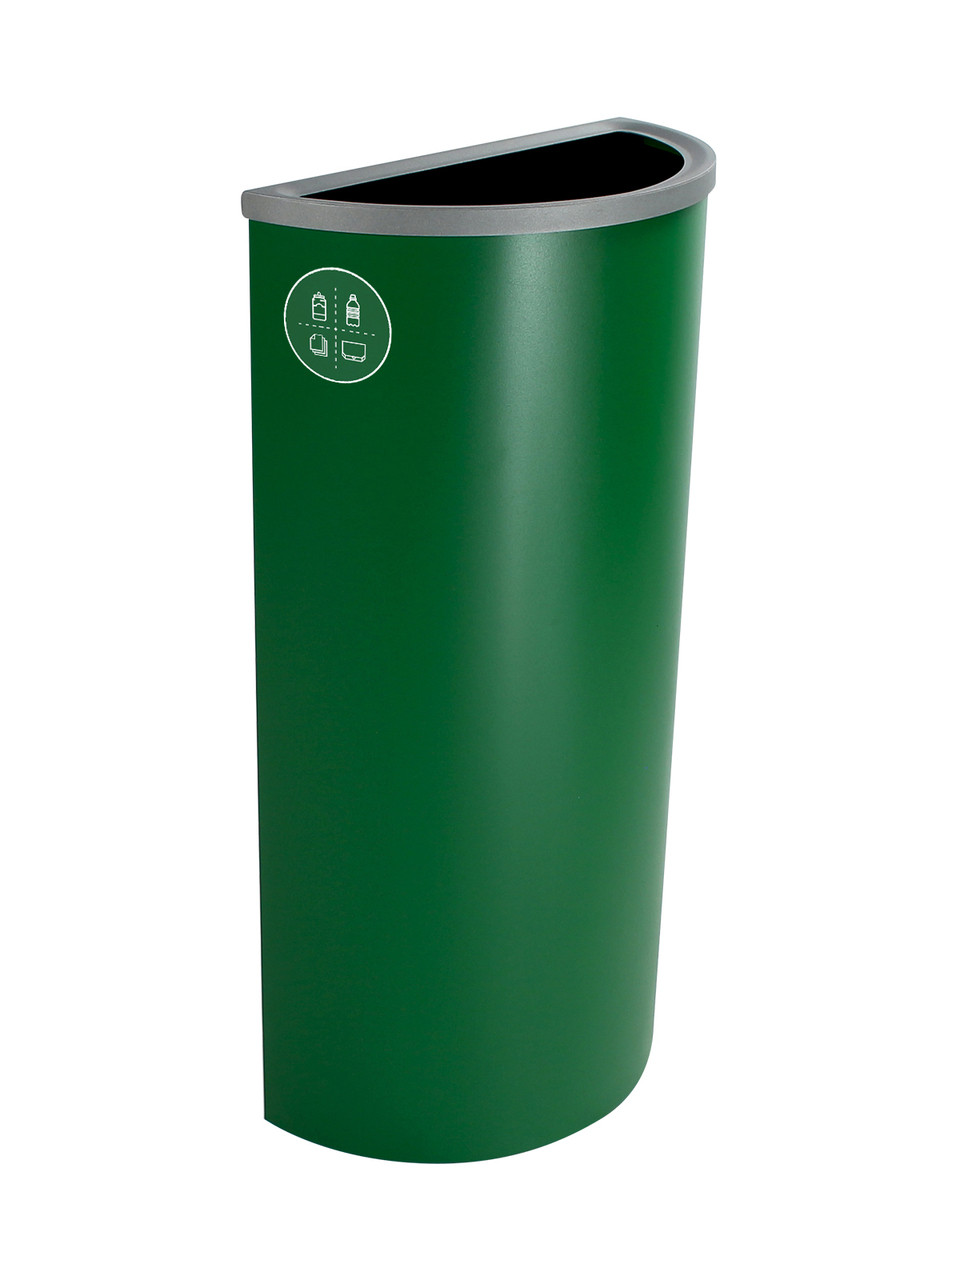 8 Gallon Steel Spectrum Half Round Multi Recycle Bin Dark Green 8107024-4